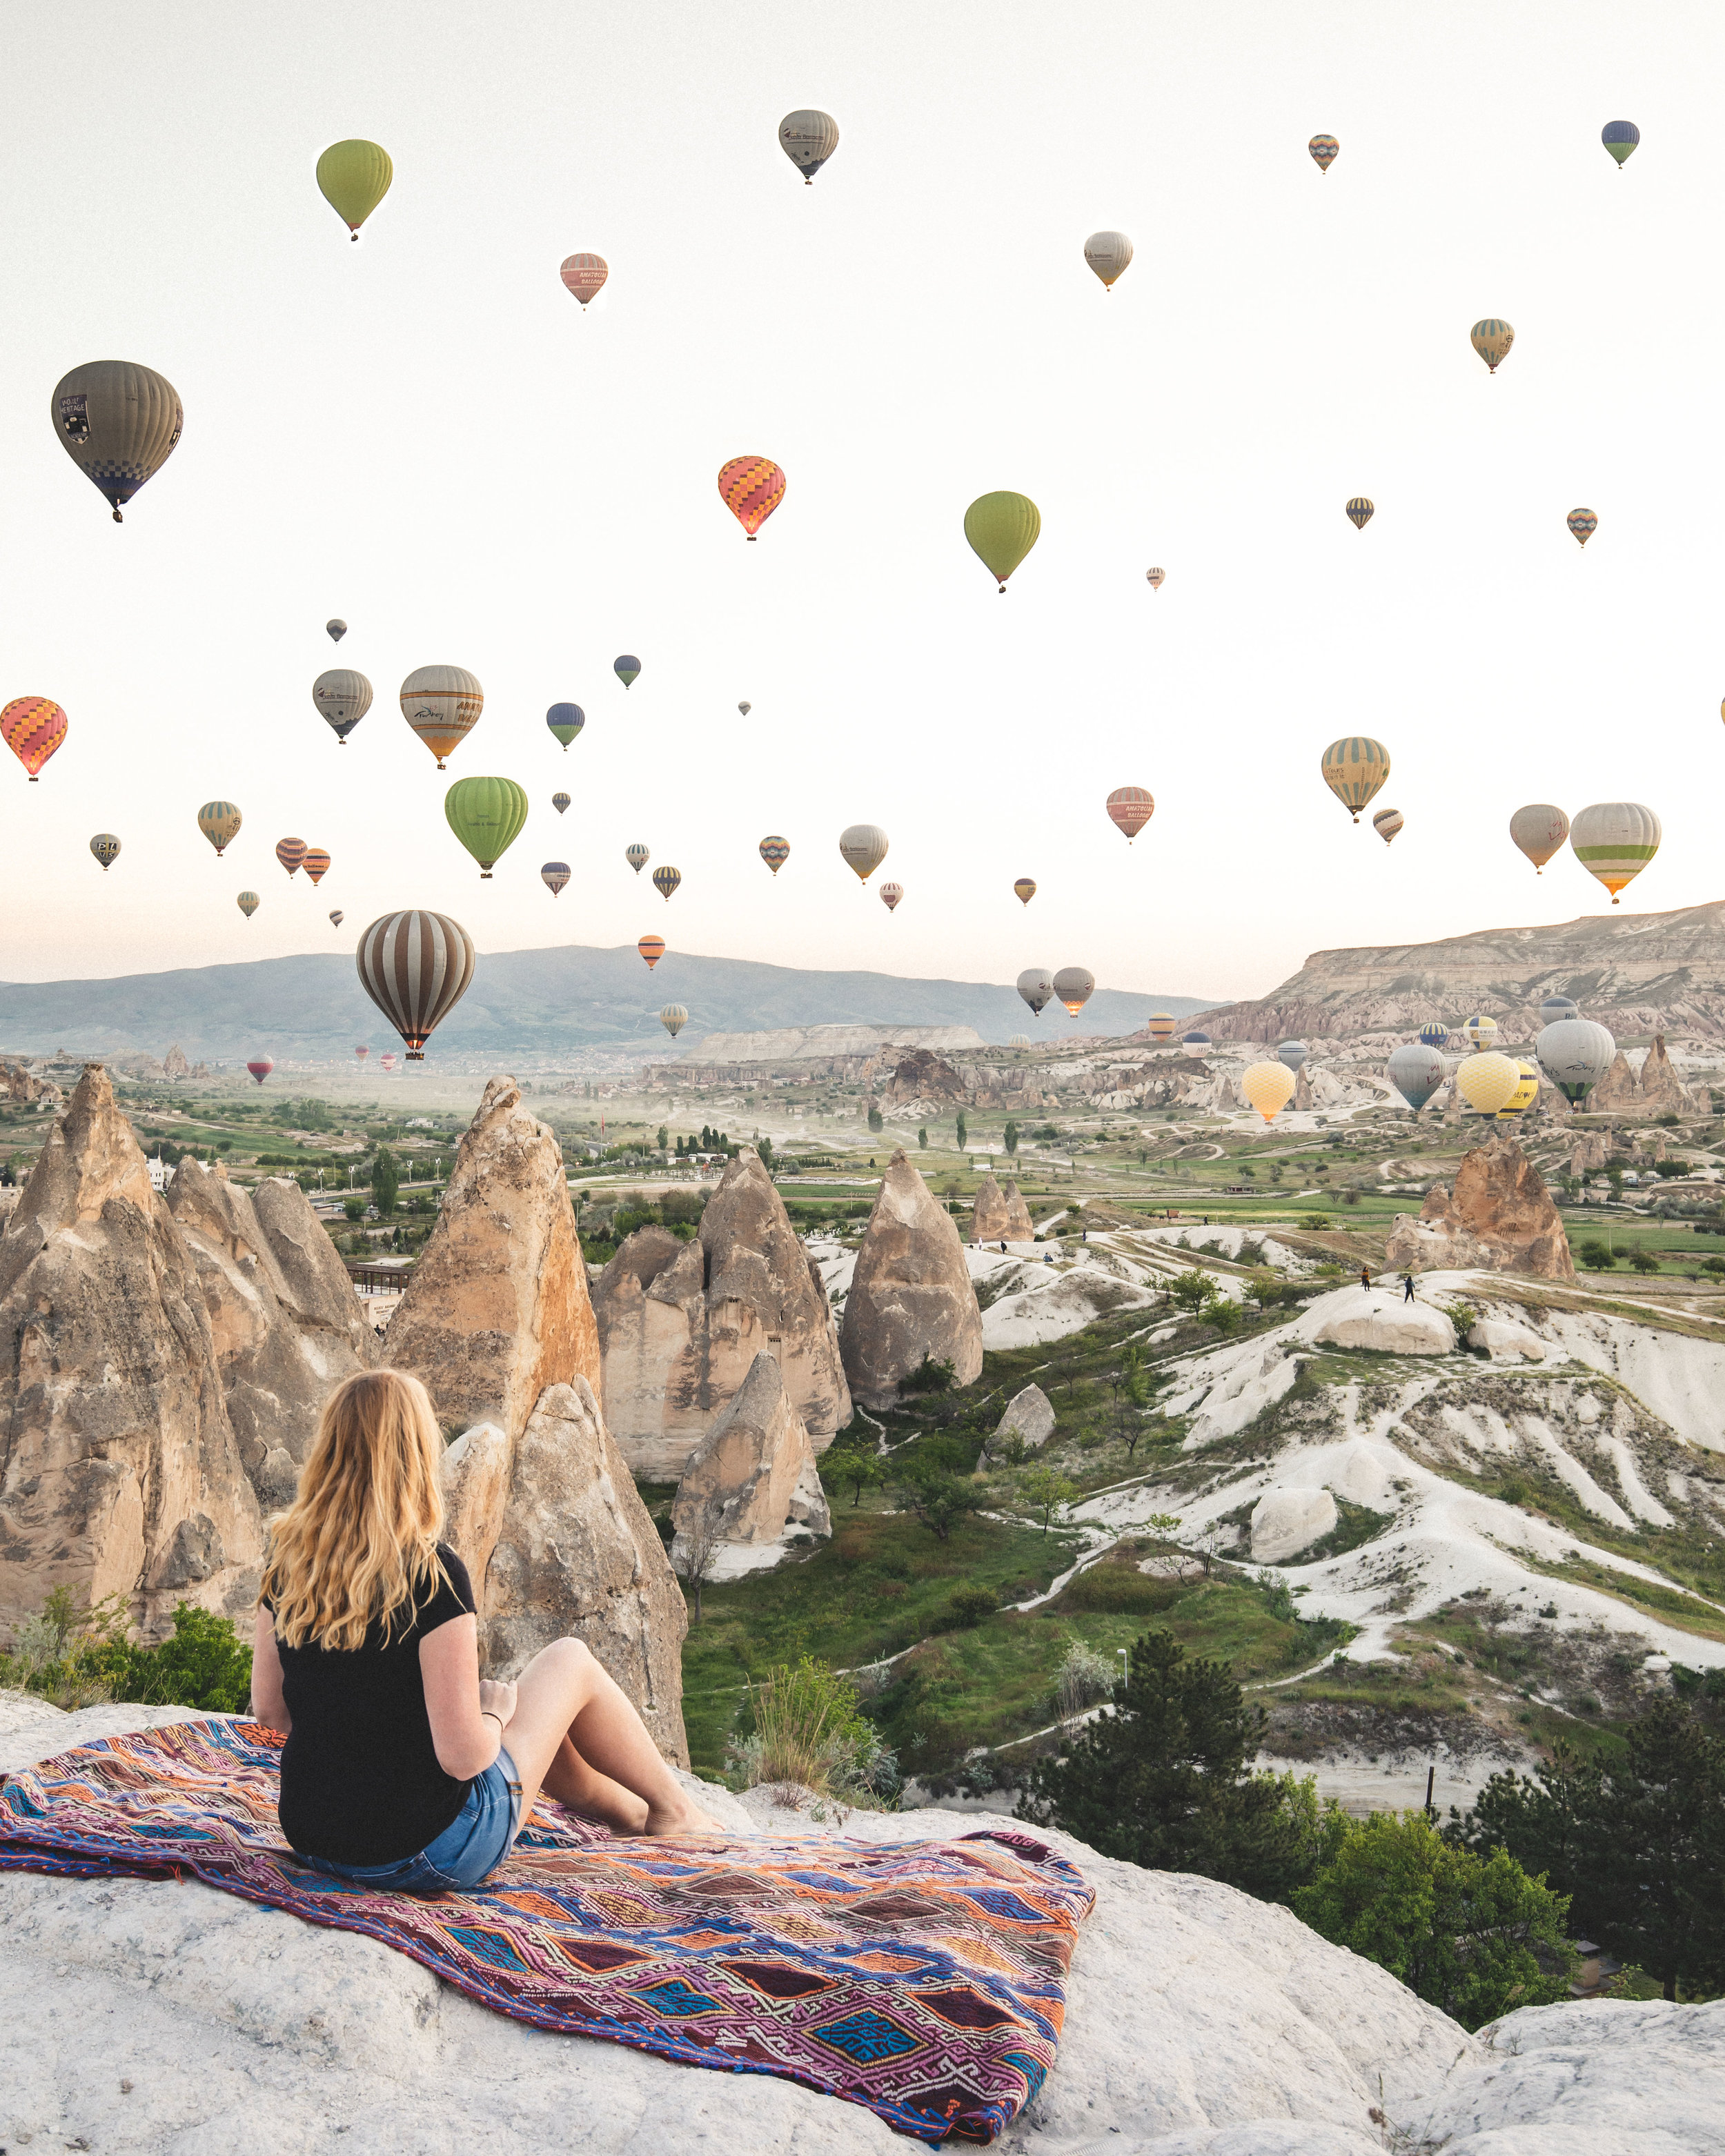 Best places for sunrise in Cappadocia - Sunset Hill